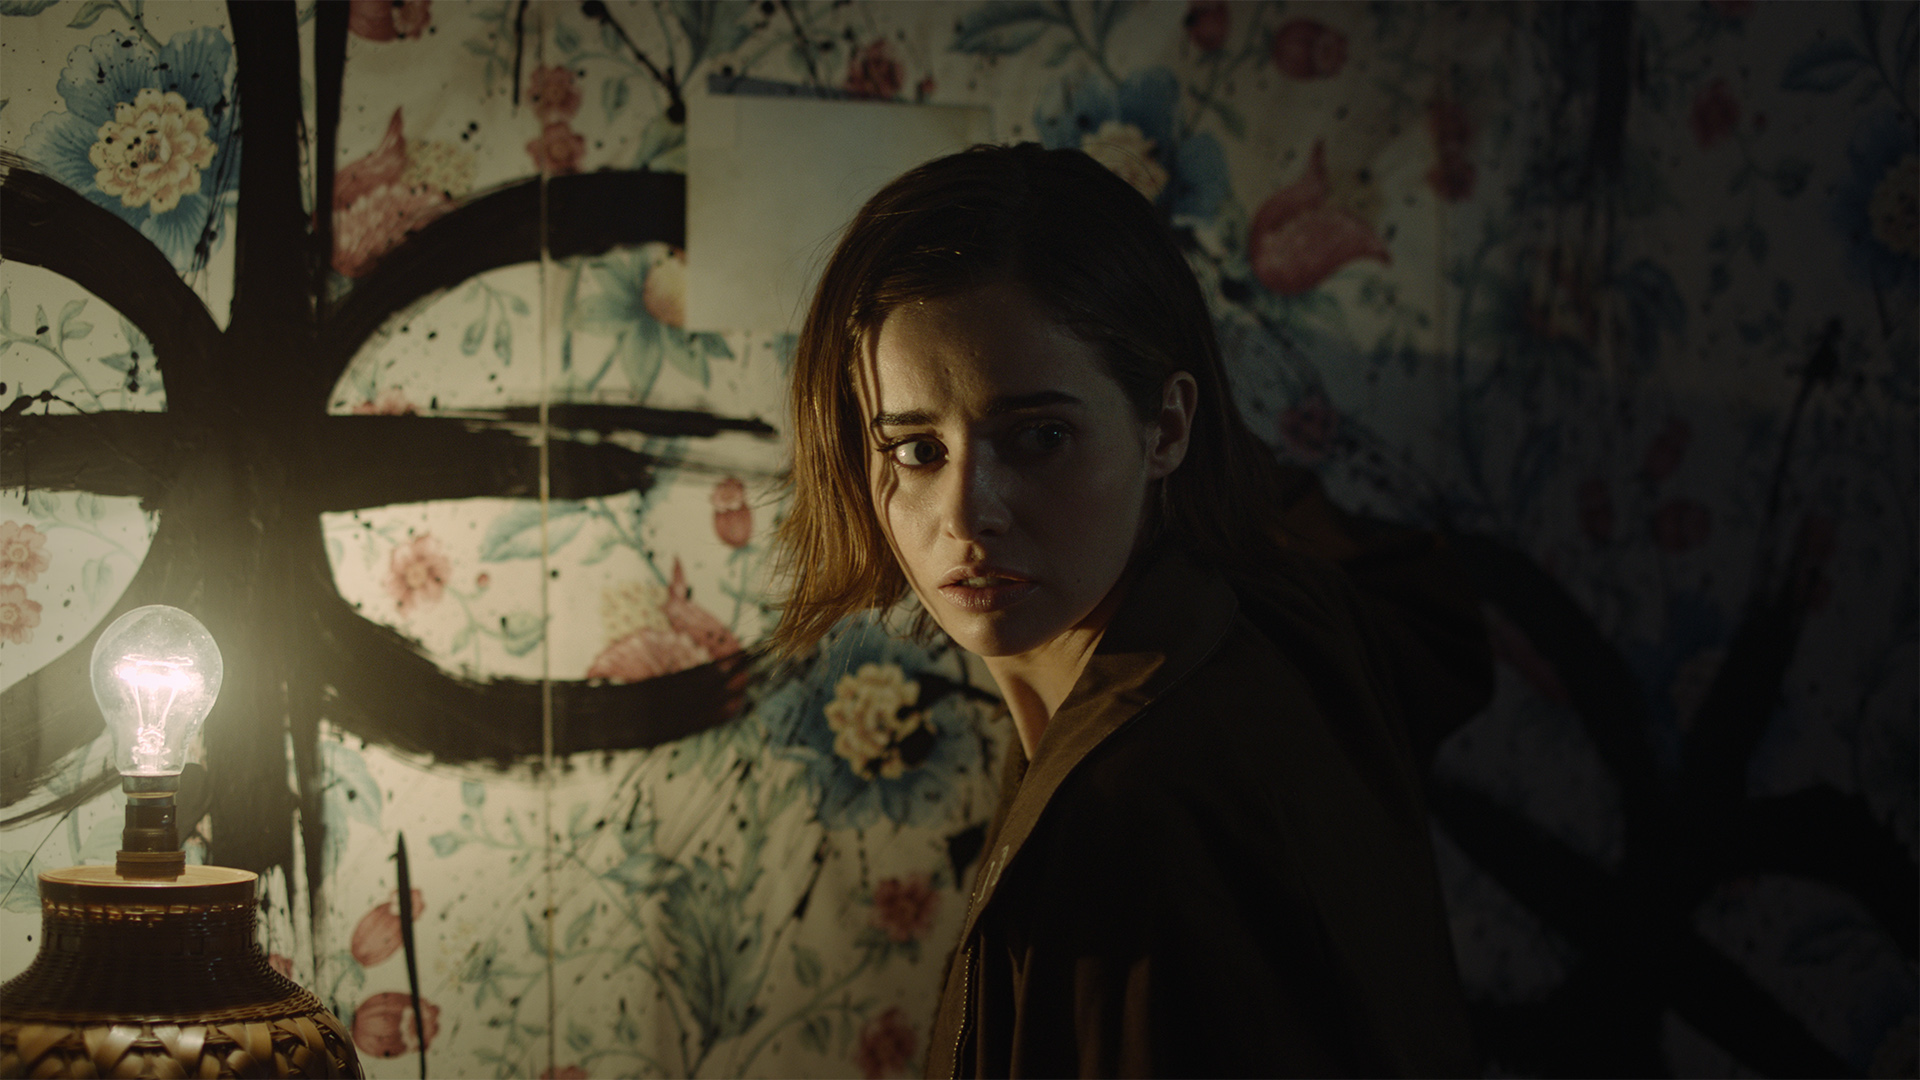 Erica, a white woman with dark hair, stands in a dimly lit room. She is looking over her shoulder with a concerned expression. A symbol has been painted on the wall.